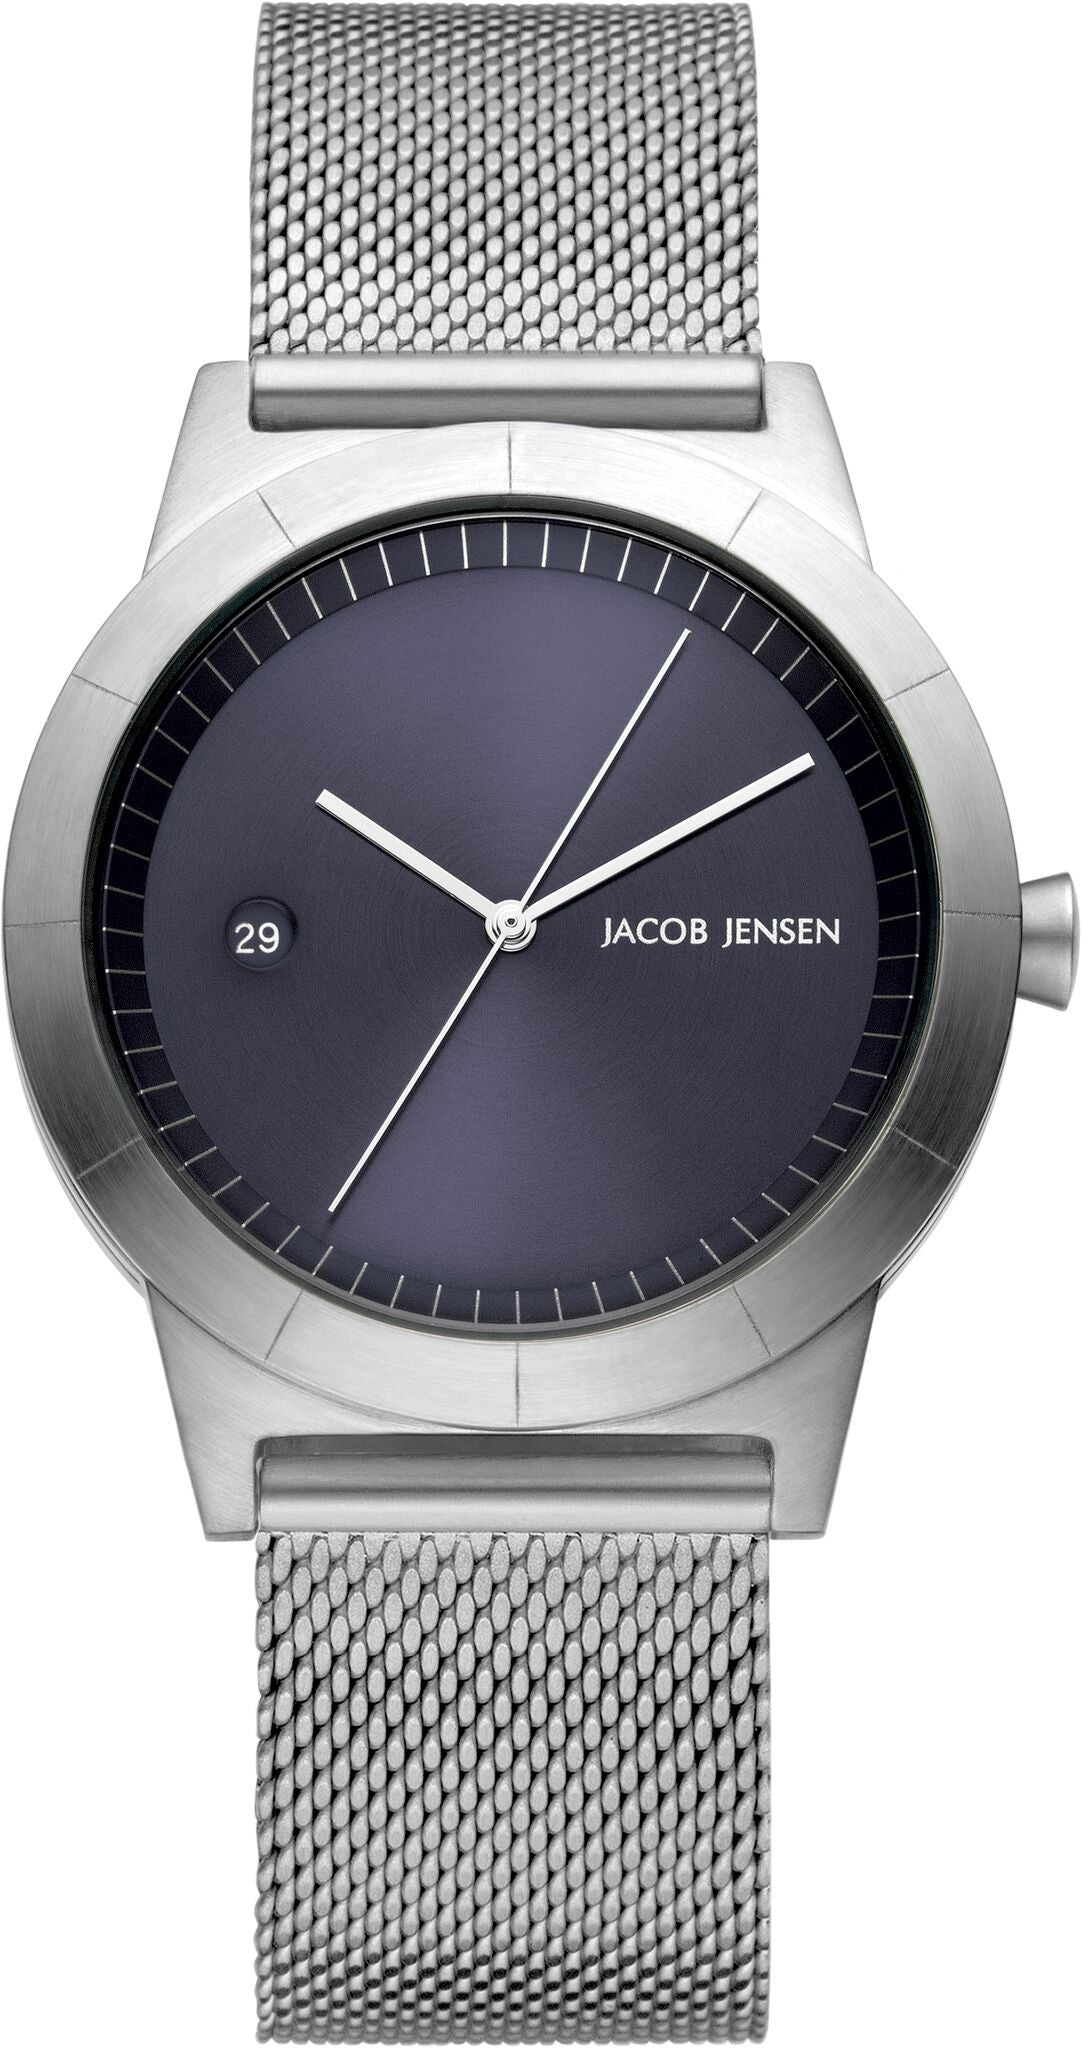 Ascent 153 Women's Watch, Ø36 mm